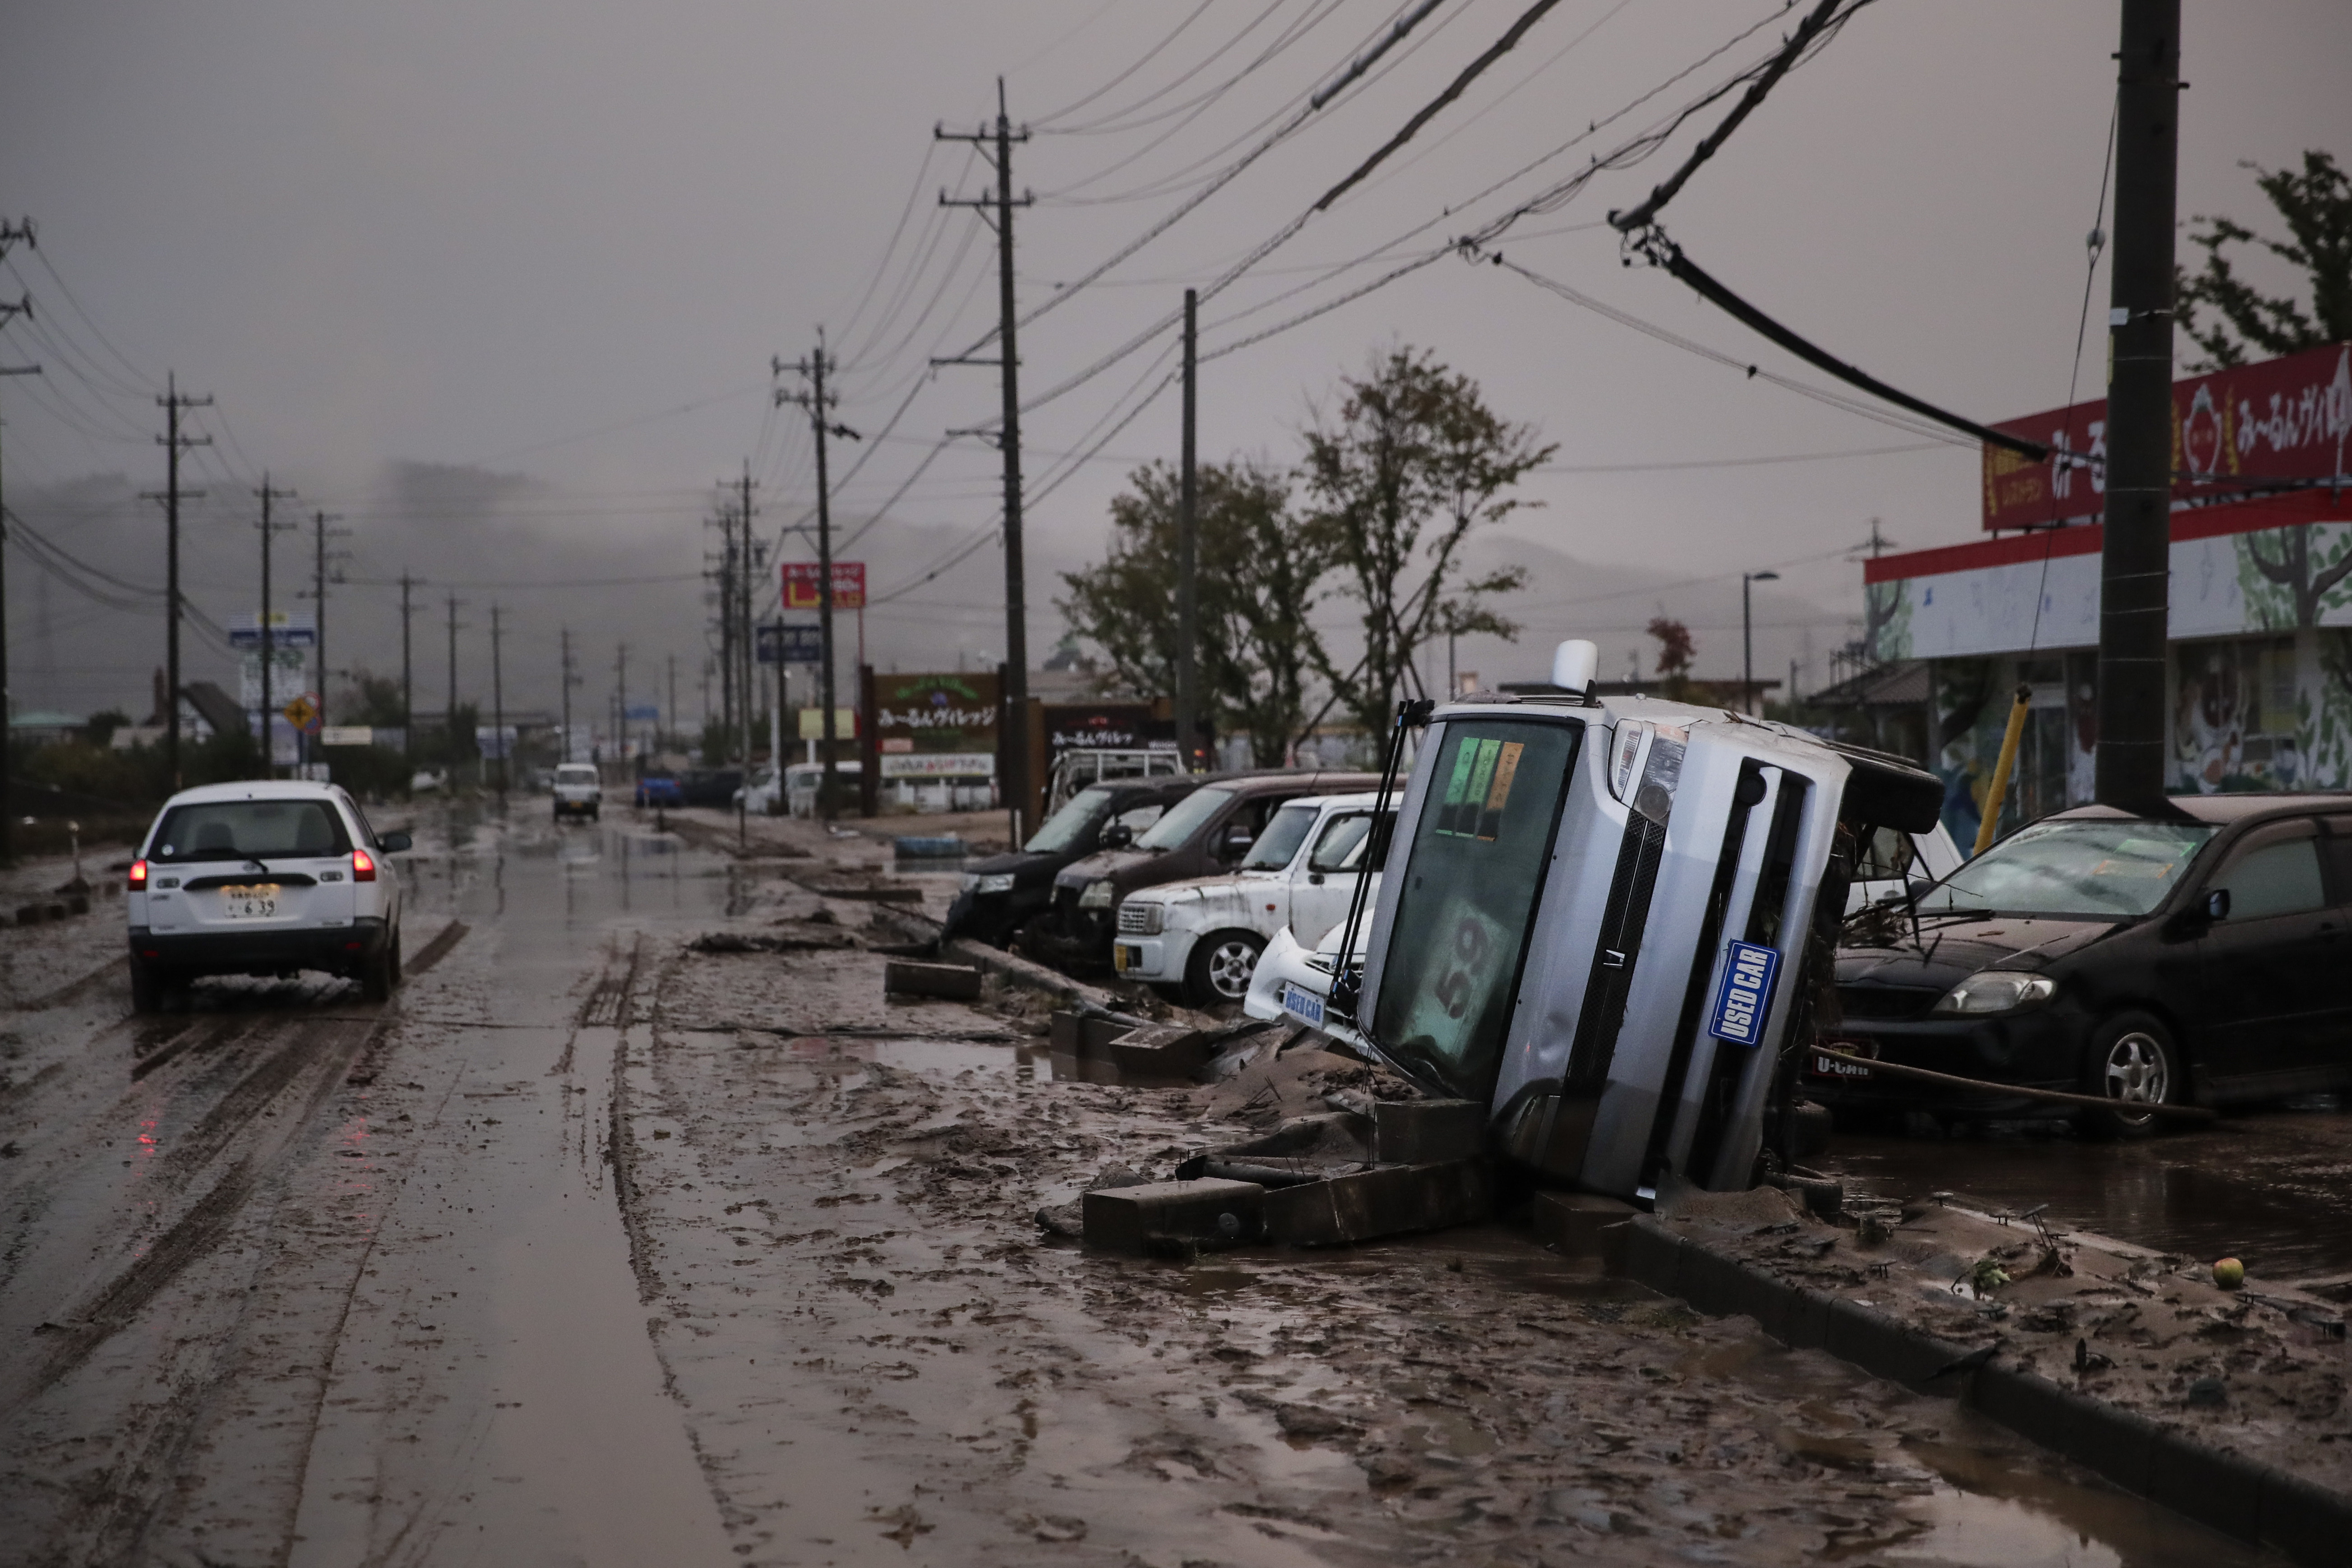 Typhoon-damaged cars sit on the street covered with mud Monday, Oct. 14, 2019, in Hoyasu, Japan. Rescue crews in Japan dug through mudslides and searched near swollen rivers Monday as they looked for those missing from typhoon Hagibis that left as many as 36 dead and caused serious damage in central and northern Japan. (AP Photo/Jae C. Hong)